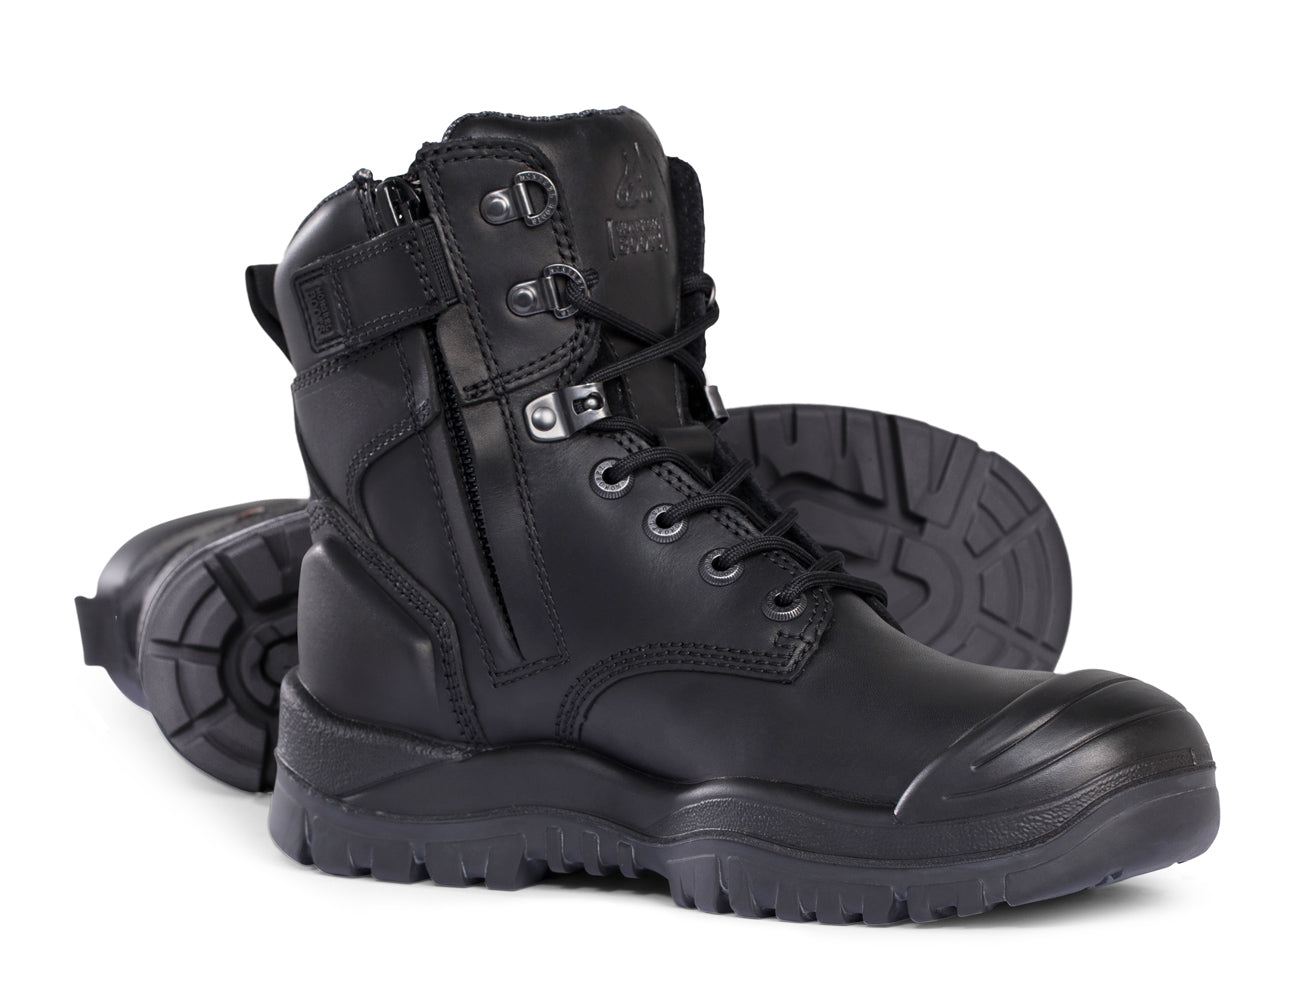 Mongrel High Leg Zip-Sider Safety Boots with Scuff Cap and Rubber Outsole - 561020